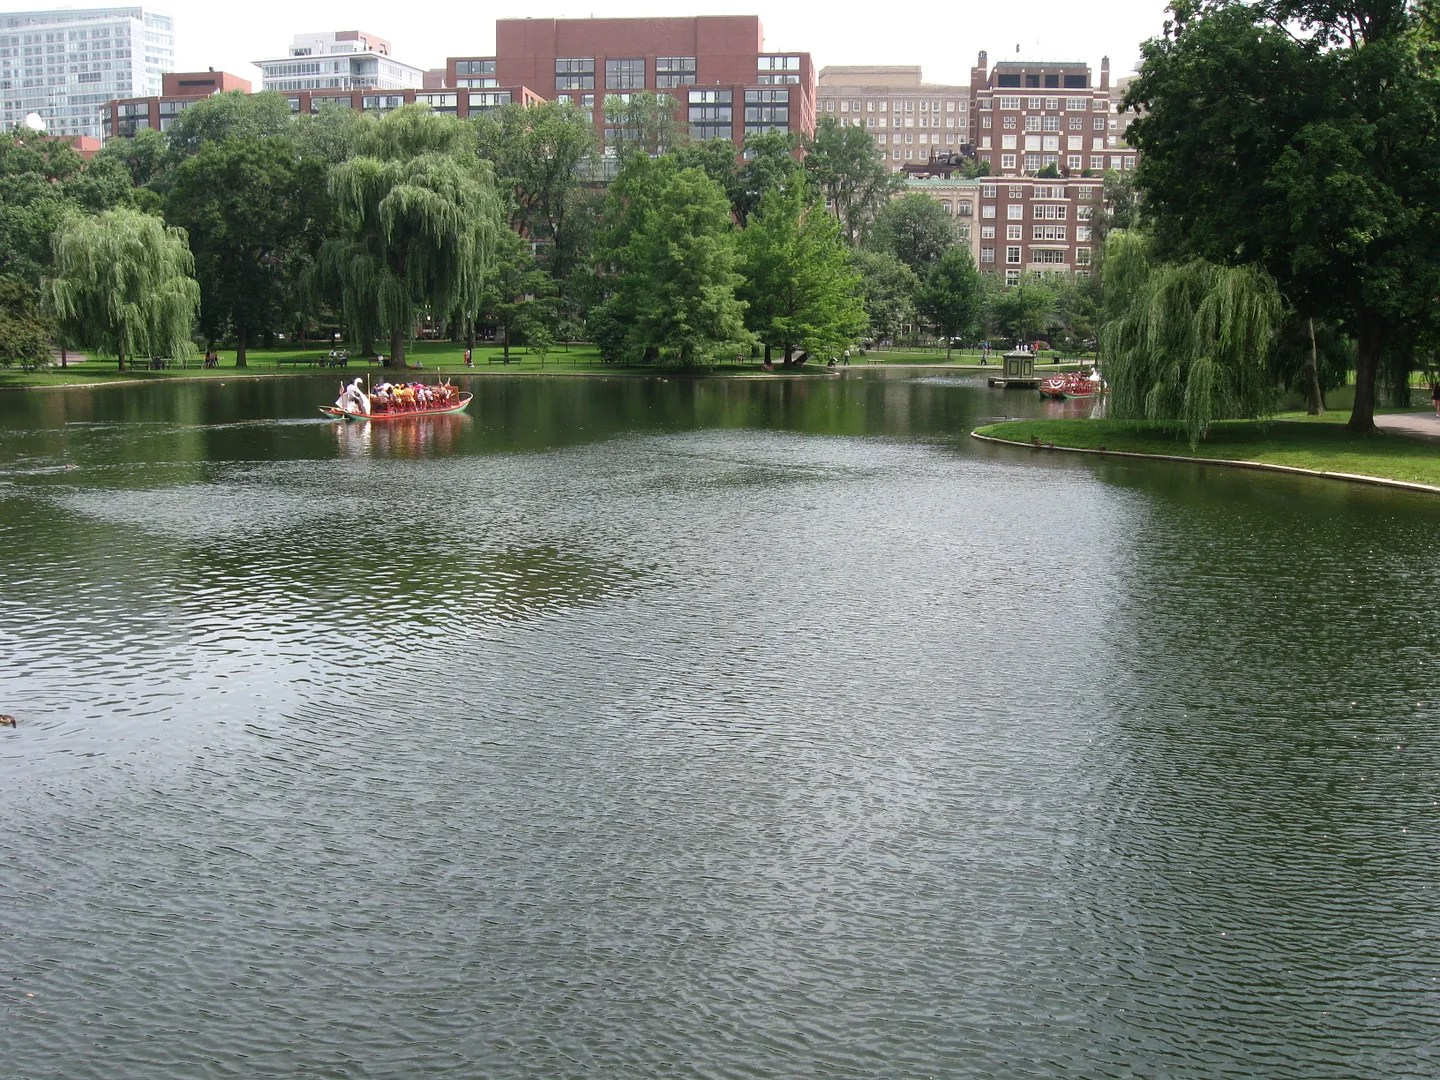 Boston Public Gardens lagoon ripples